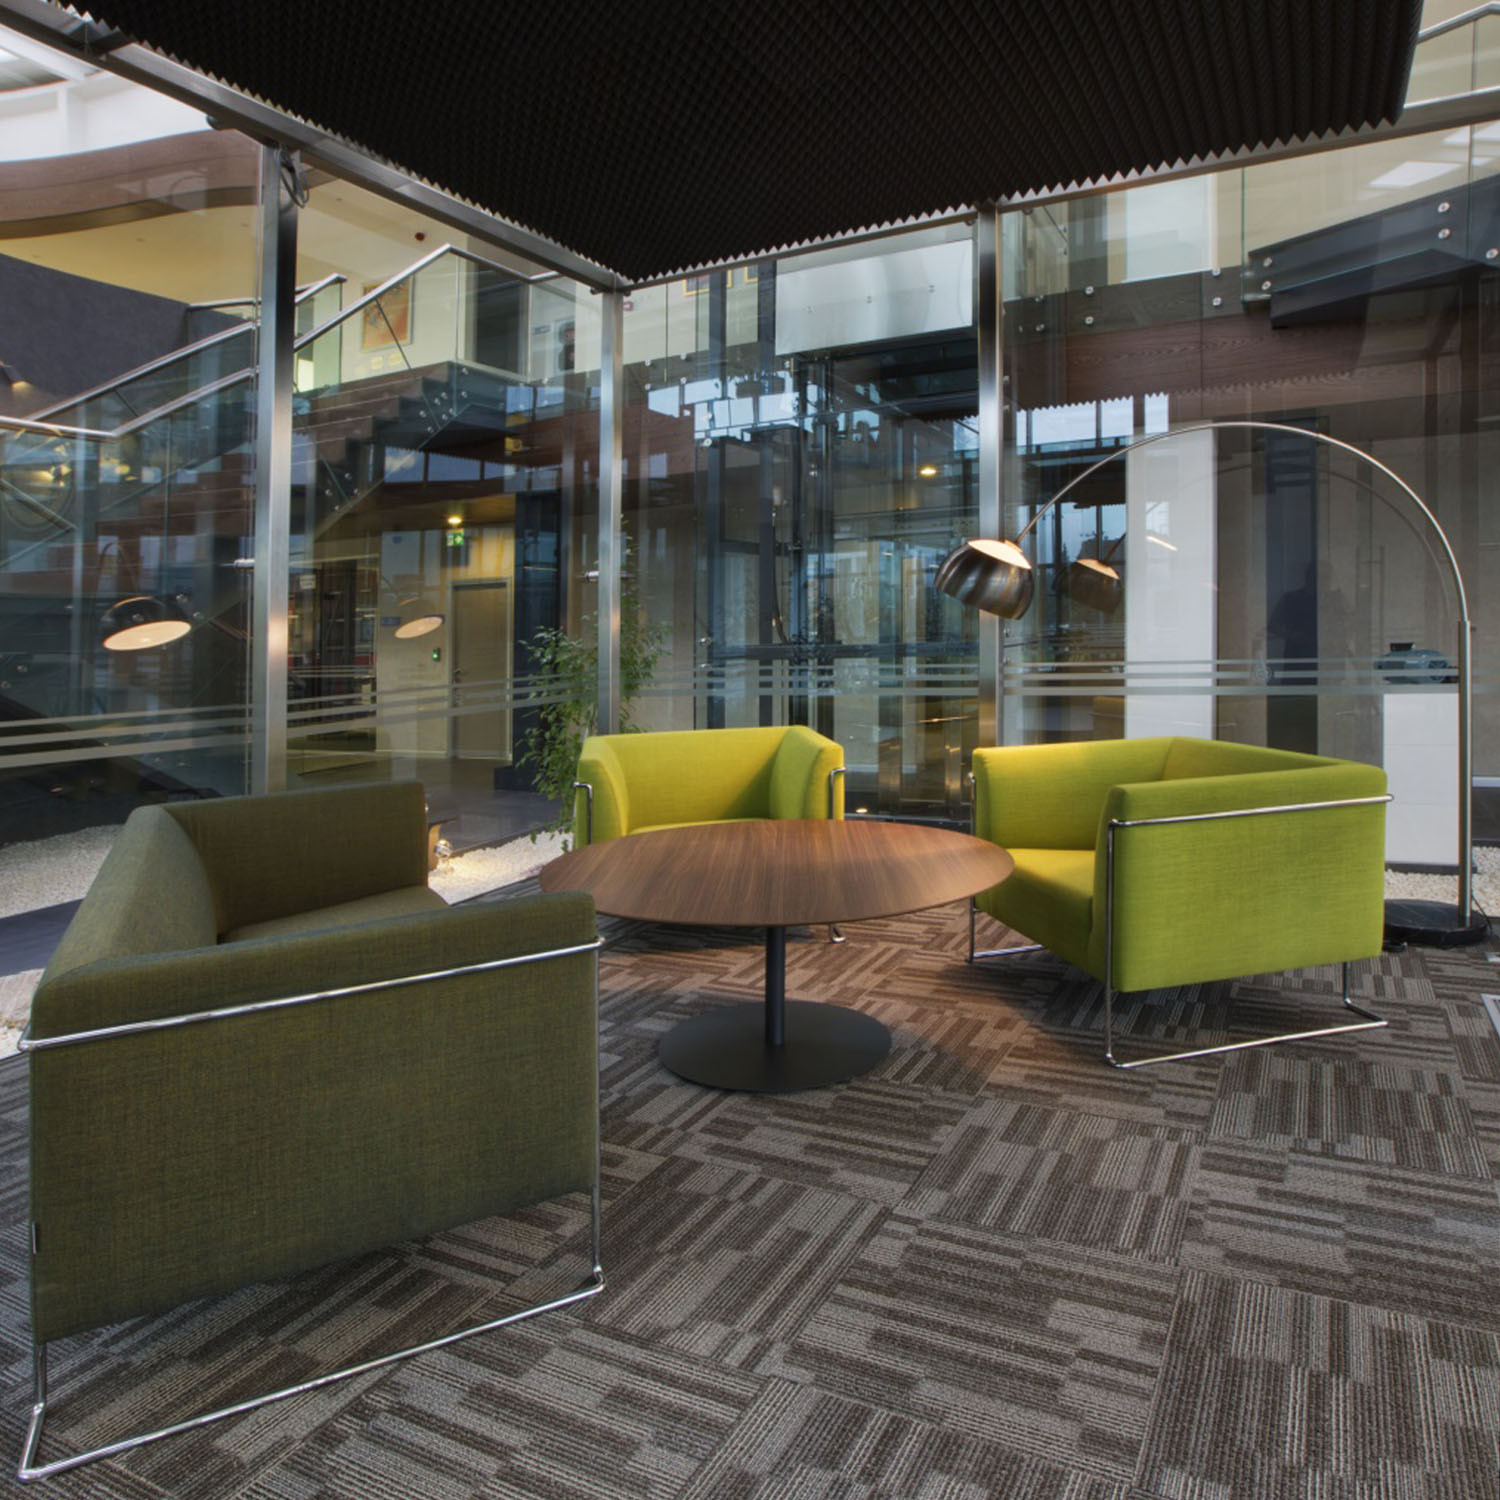 Flamingo Reception Seating by Koleksiyon